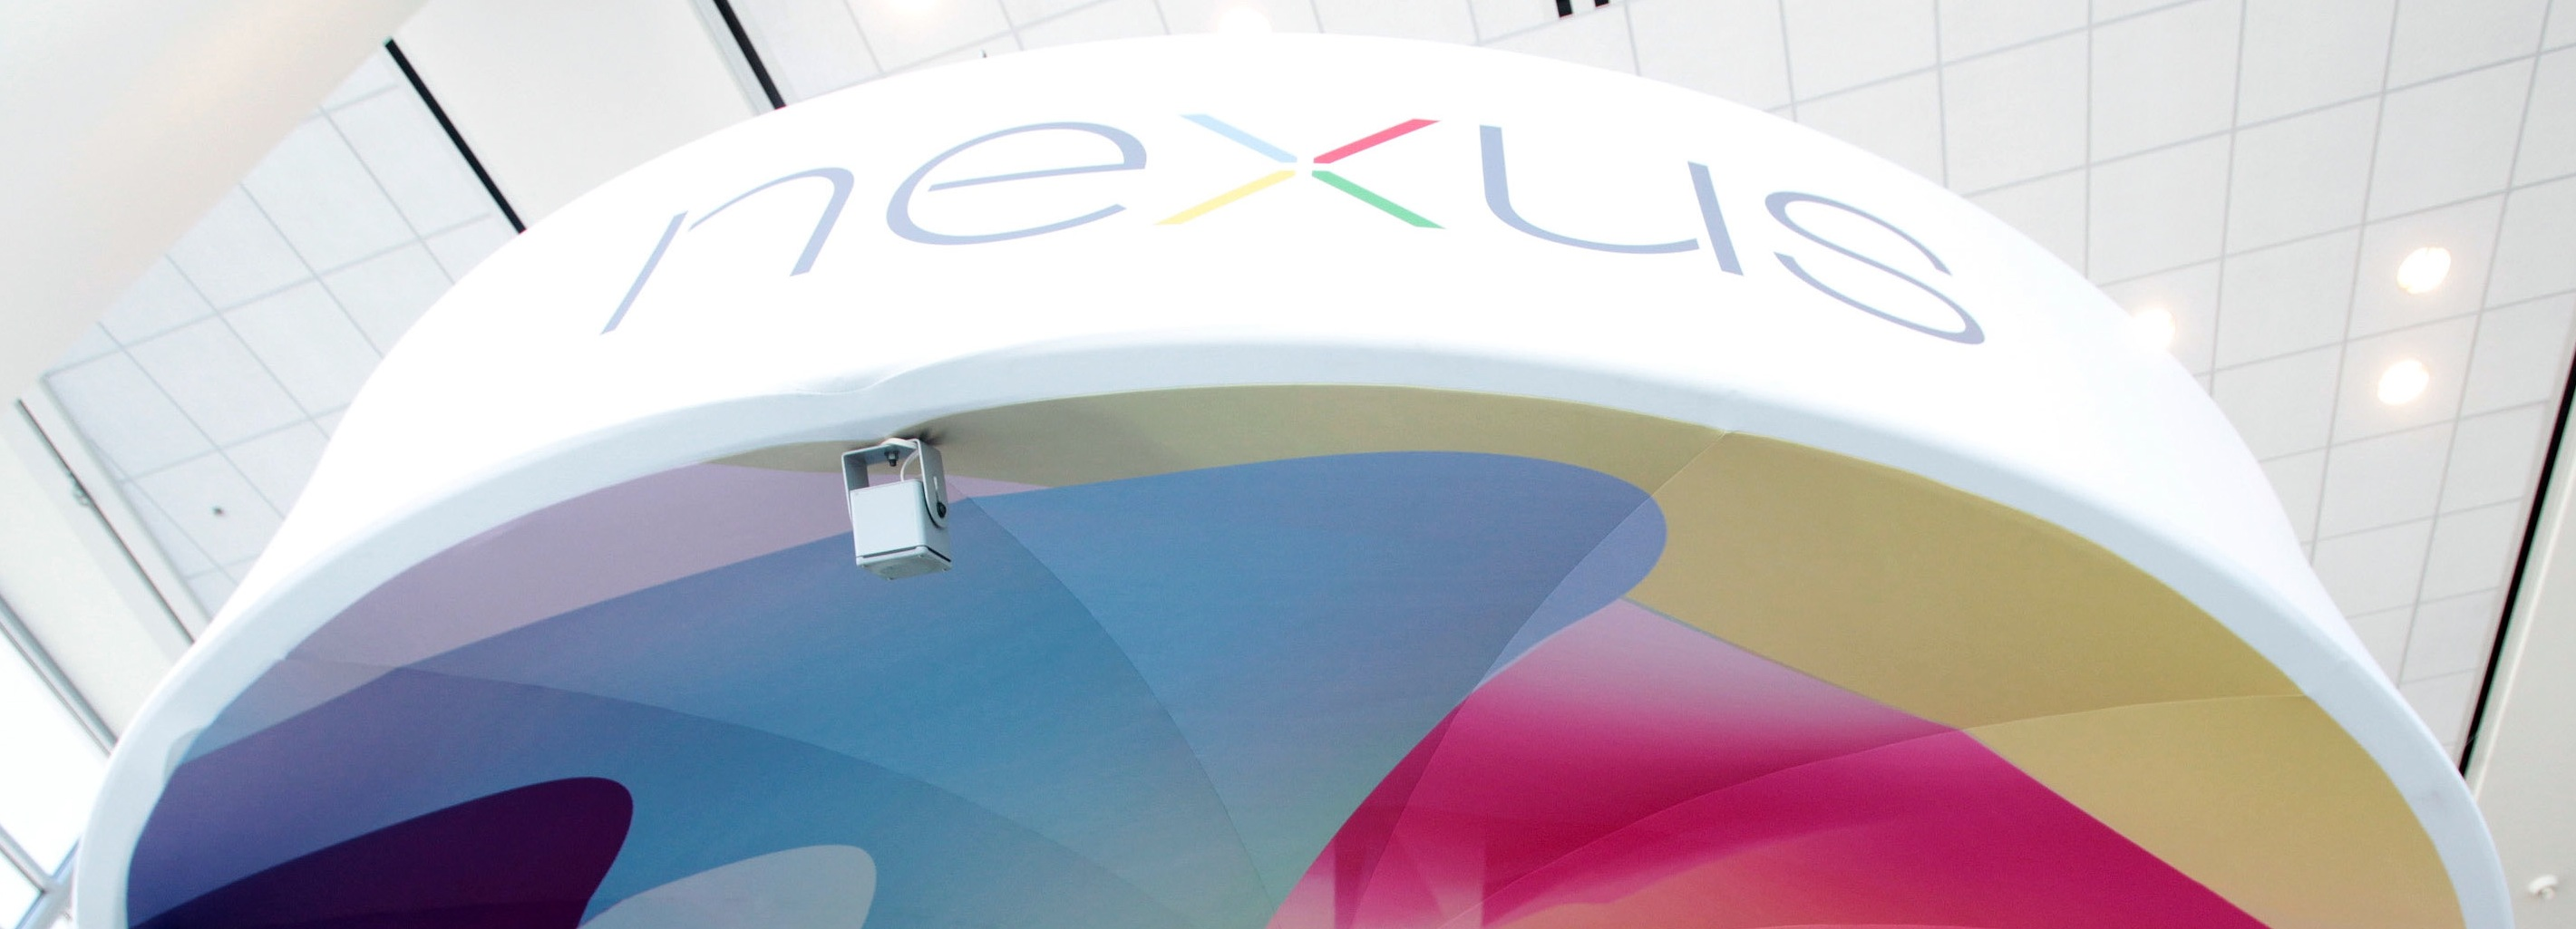 Google's 32GB Nexus 7 tablet spotted at Office Depot